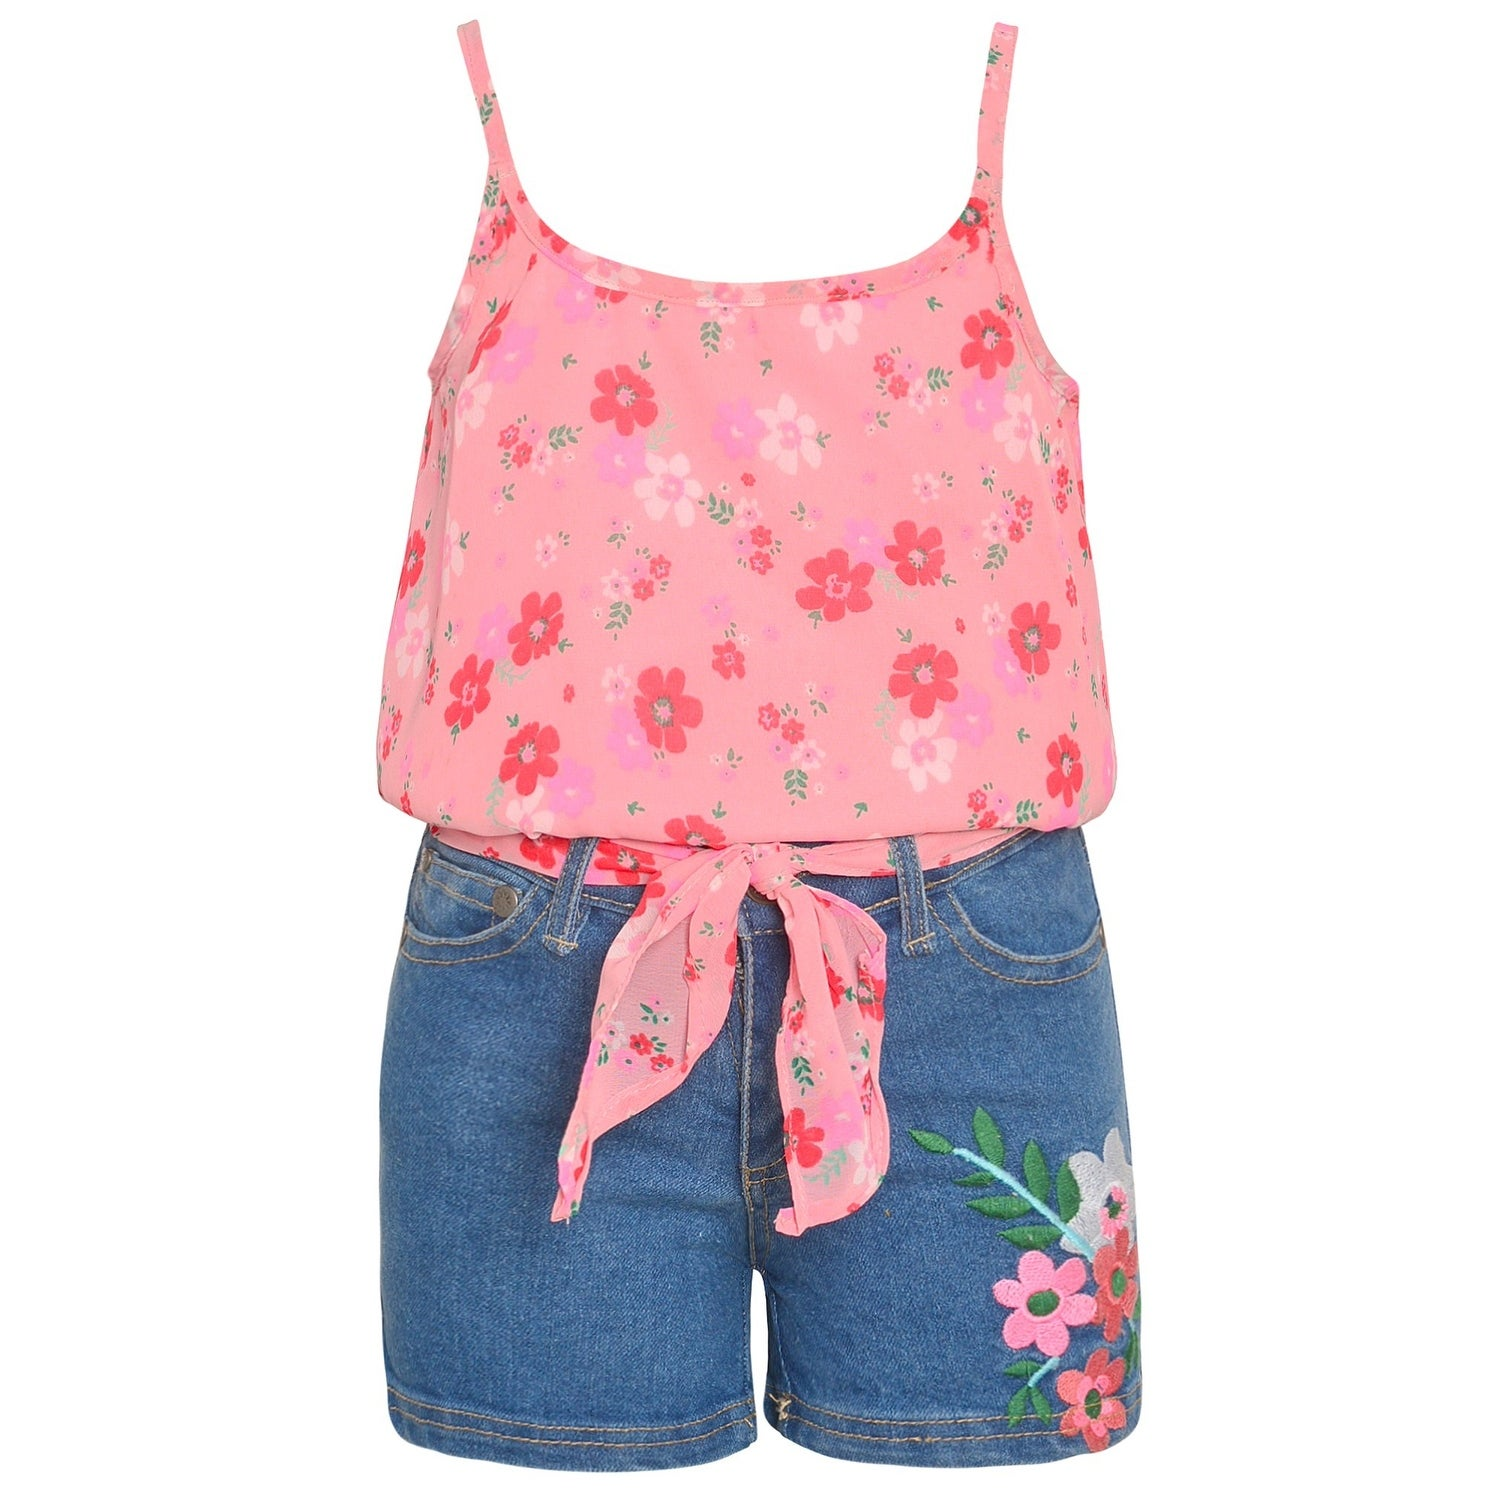 af6336503dd65 Girls' Clothing | Find Great Children's Clothing Deals Shopping at Overstock